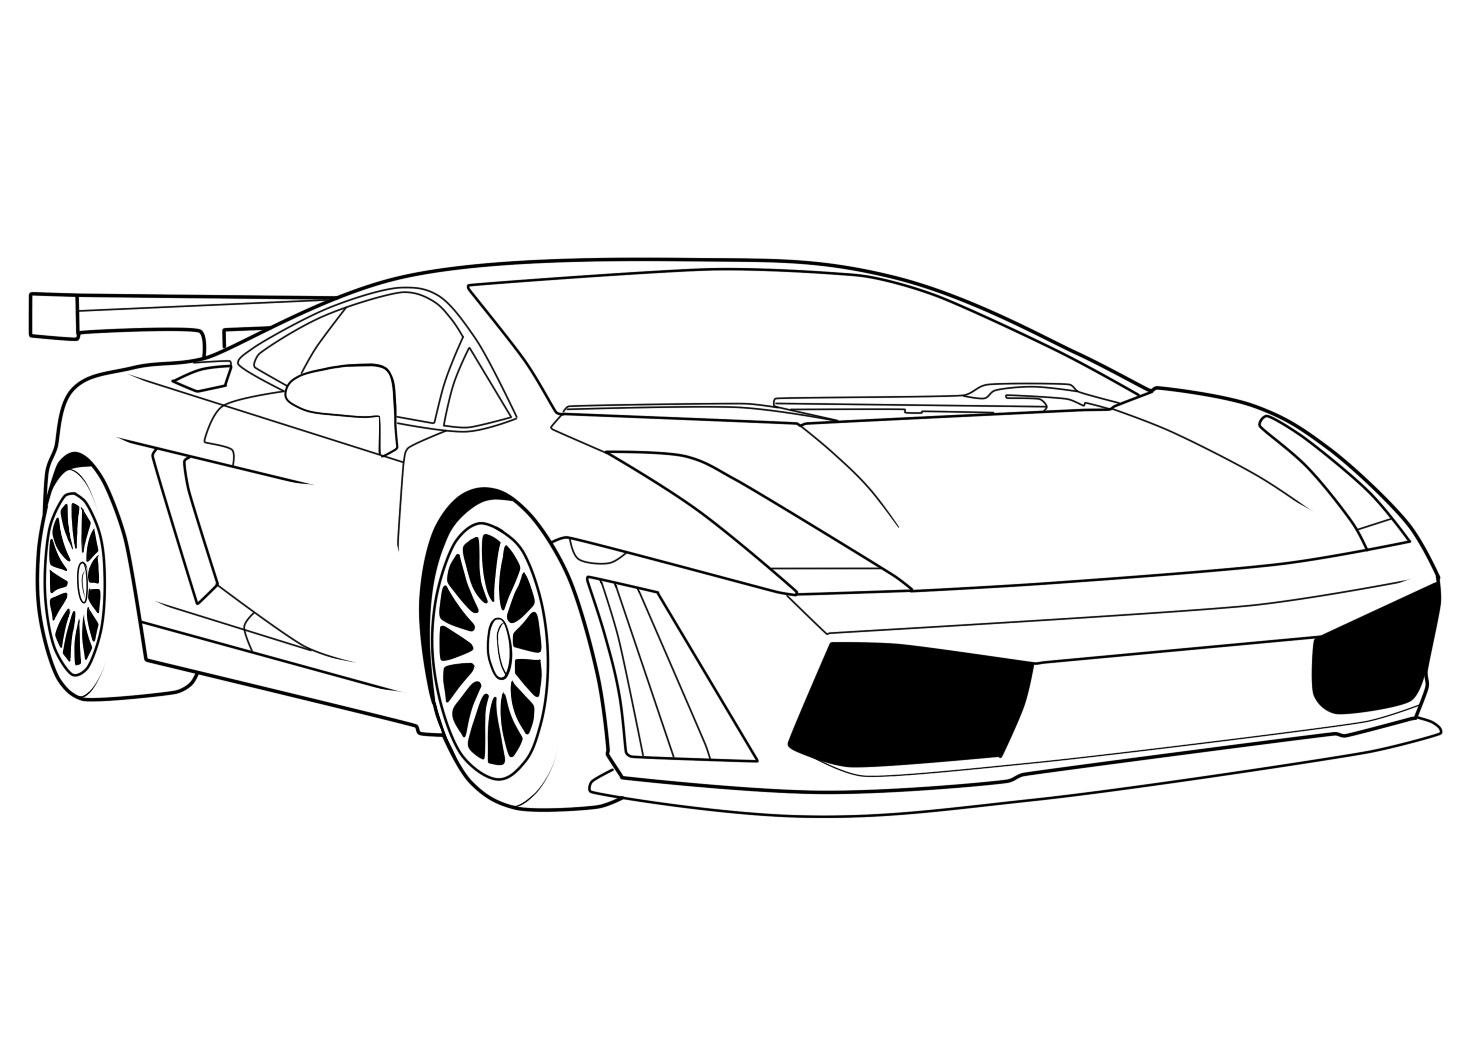 car coloring pages printable for free car coloring pages getcoloringpagescom pages coloring car printable for free